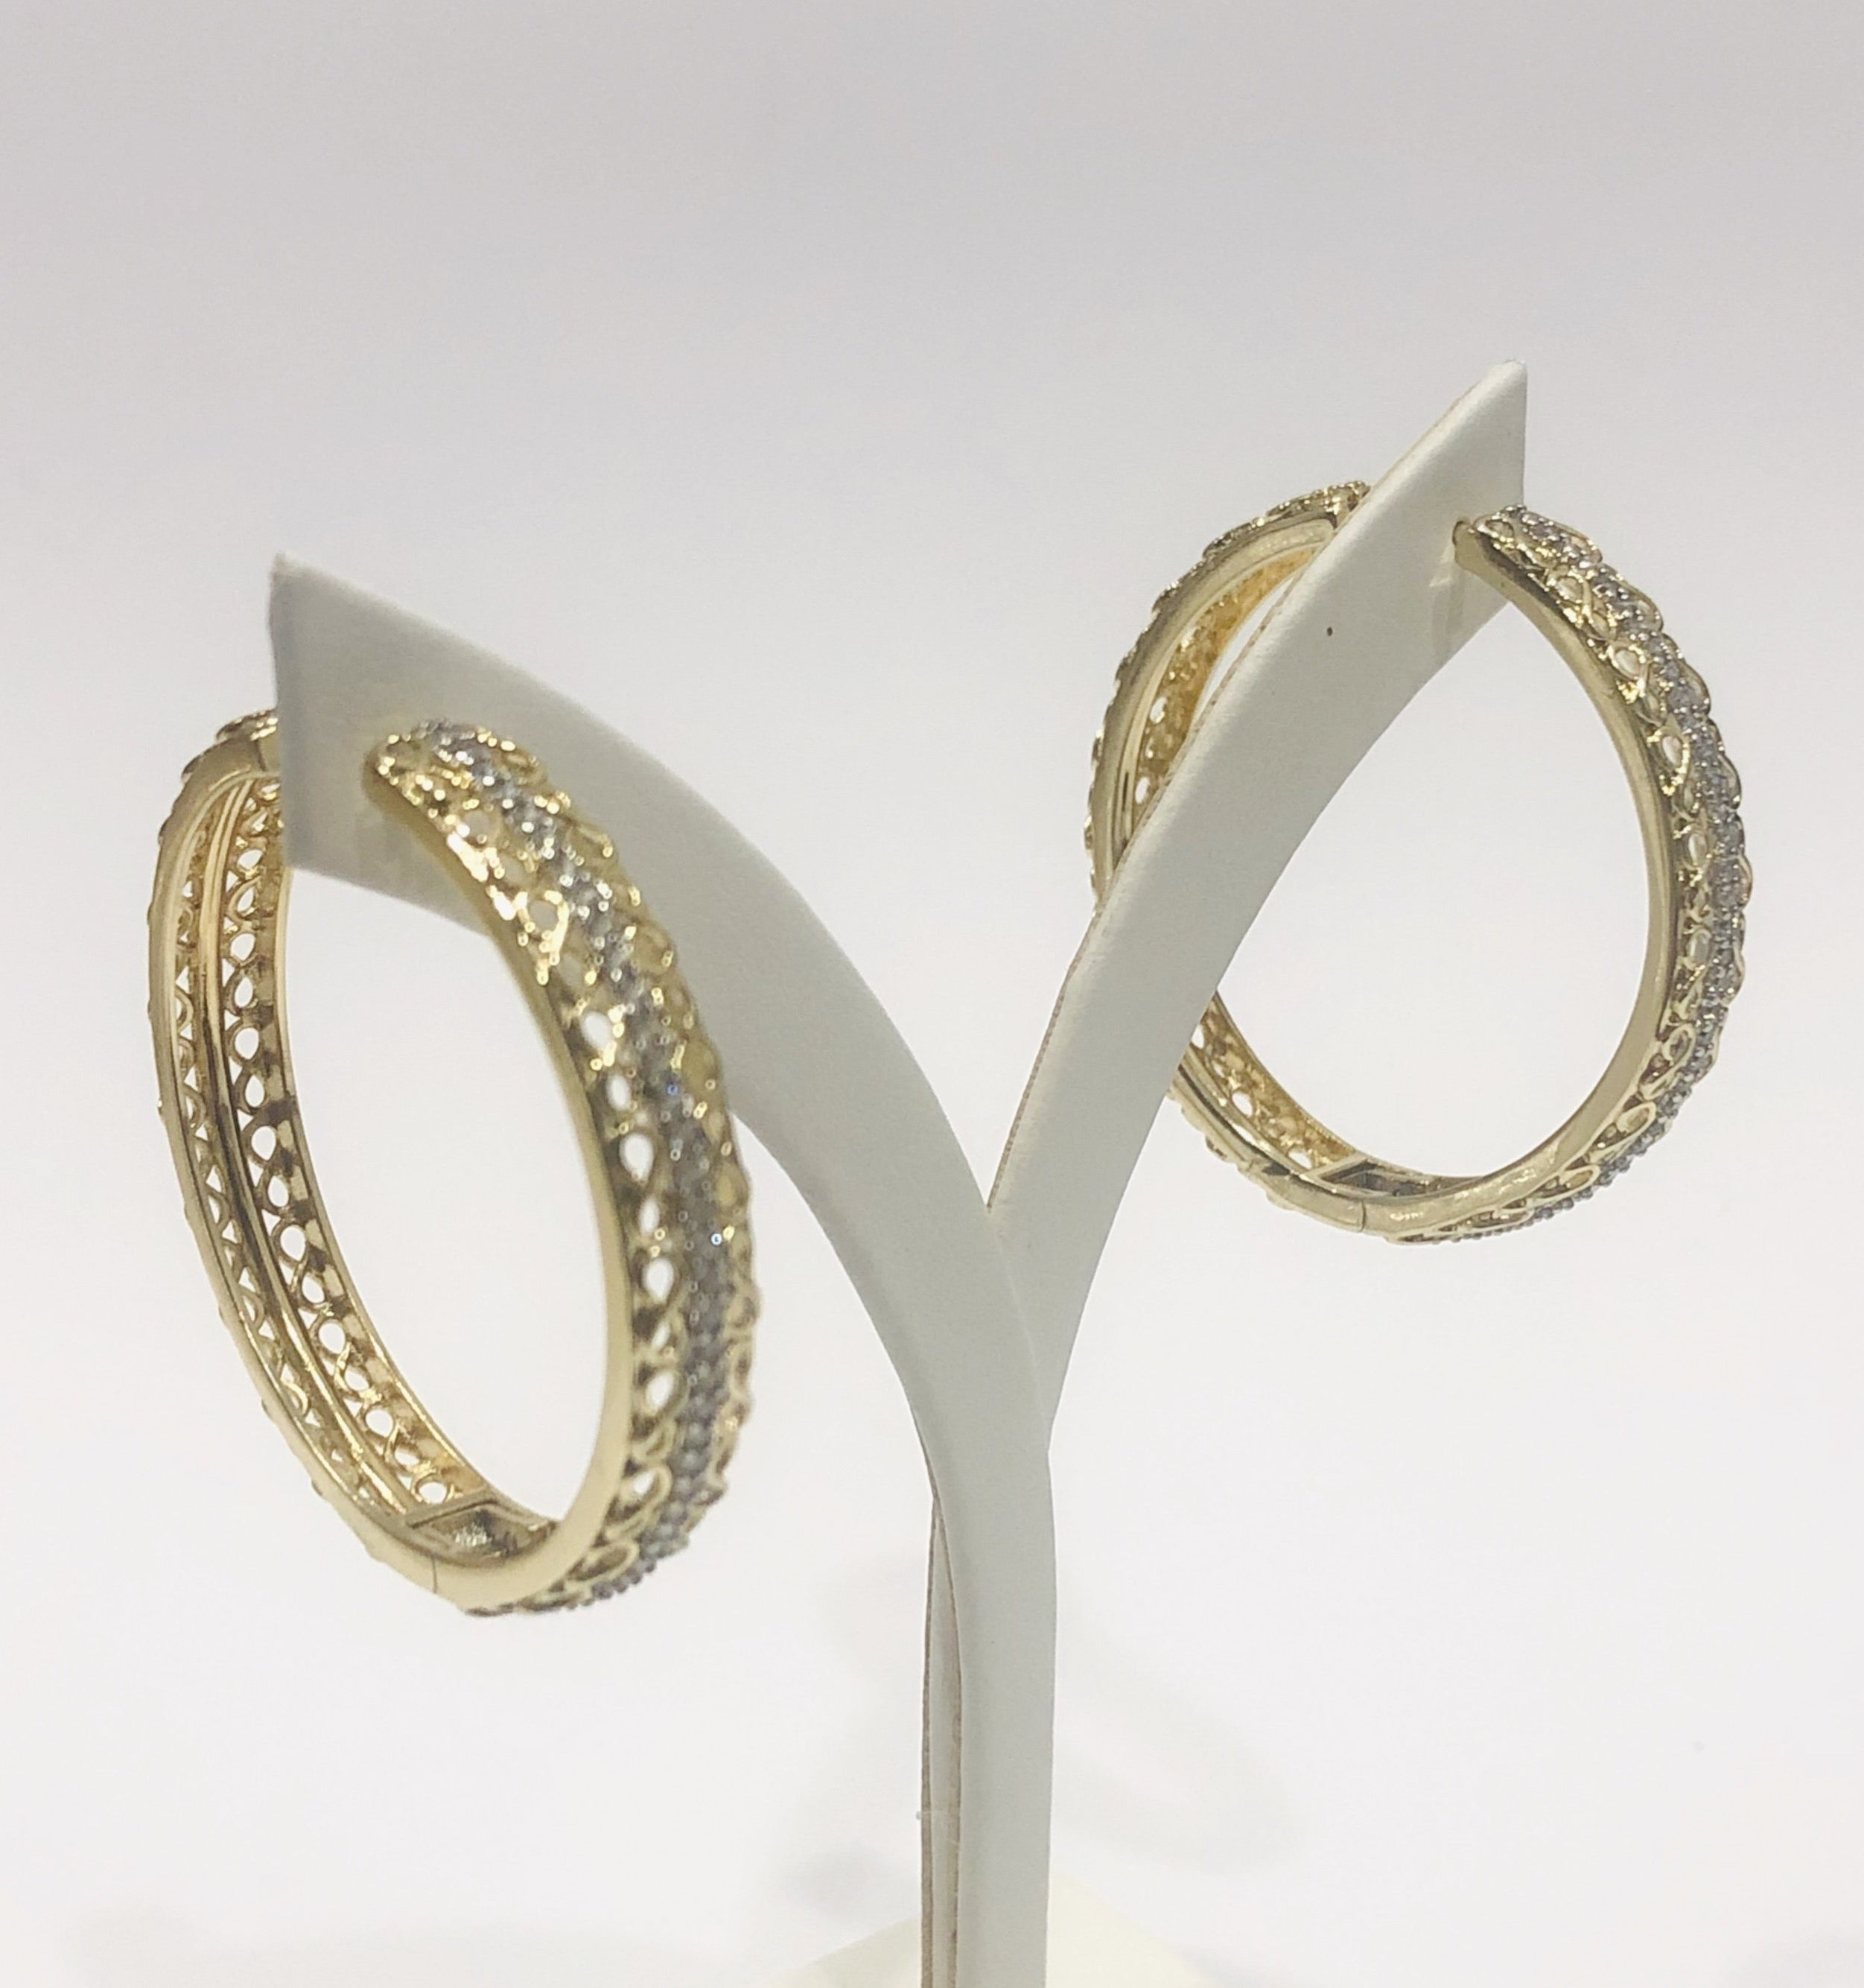 18ct Gold Plated Large Fashion Hoop Earrings - 01